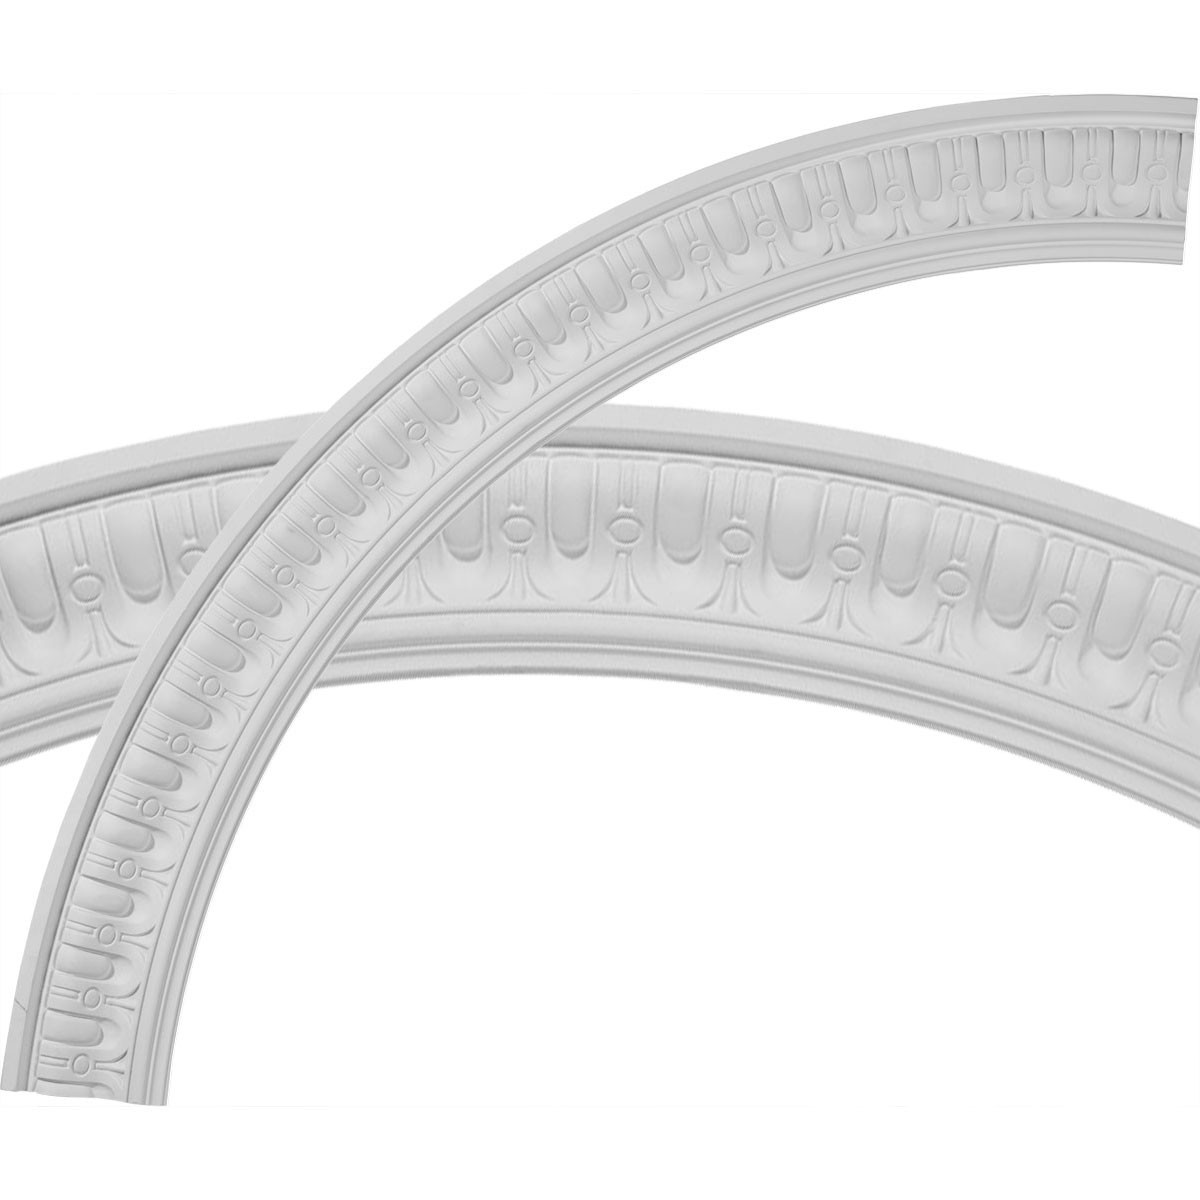 """EM-CR55SQ - 55""""OD x 46 3/4""""ID x 4 1/8""""W x 1 1/8""""P Sequential Ceiling Ring (1/4 of complete circle)"""